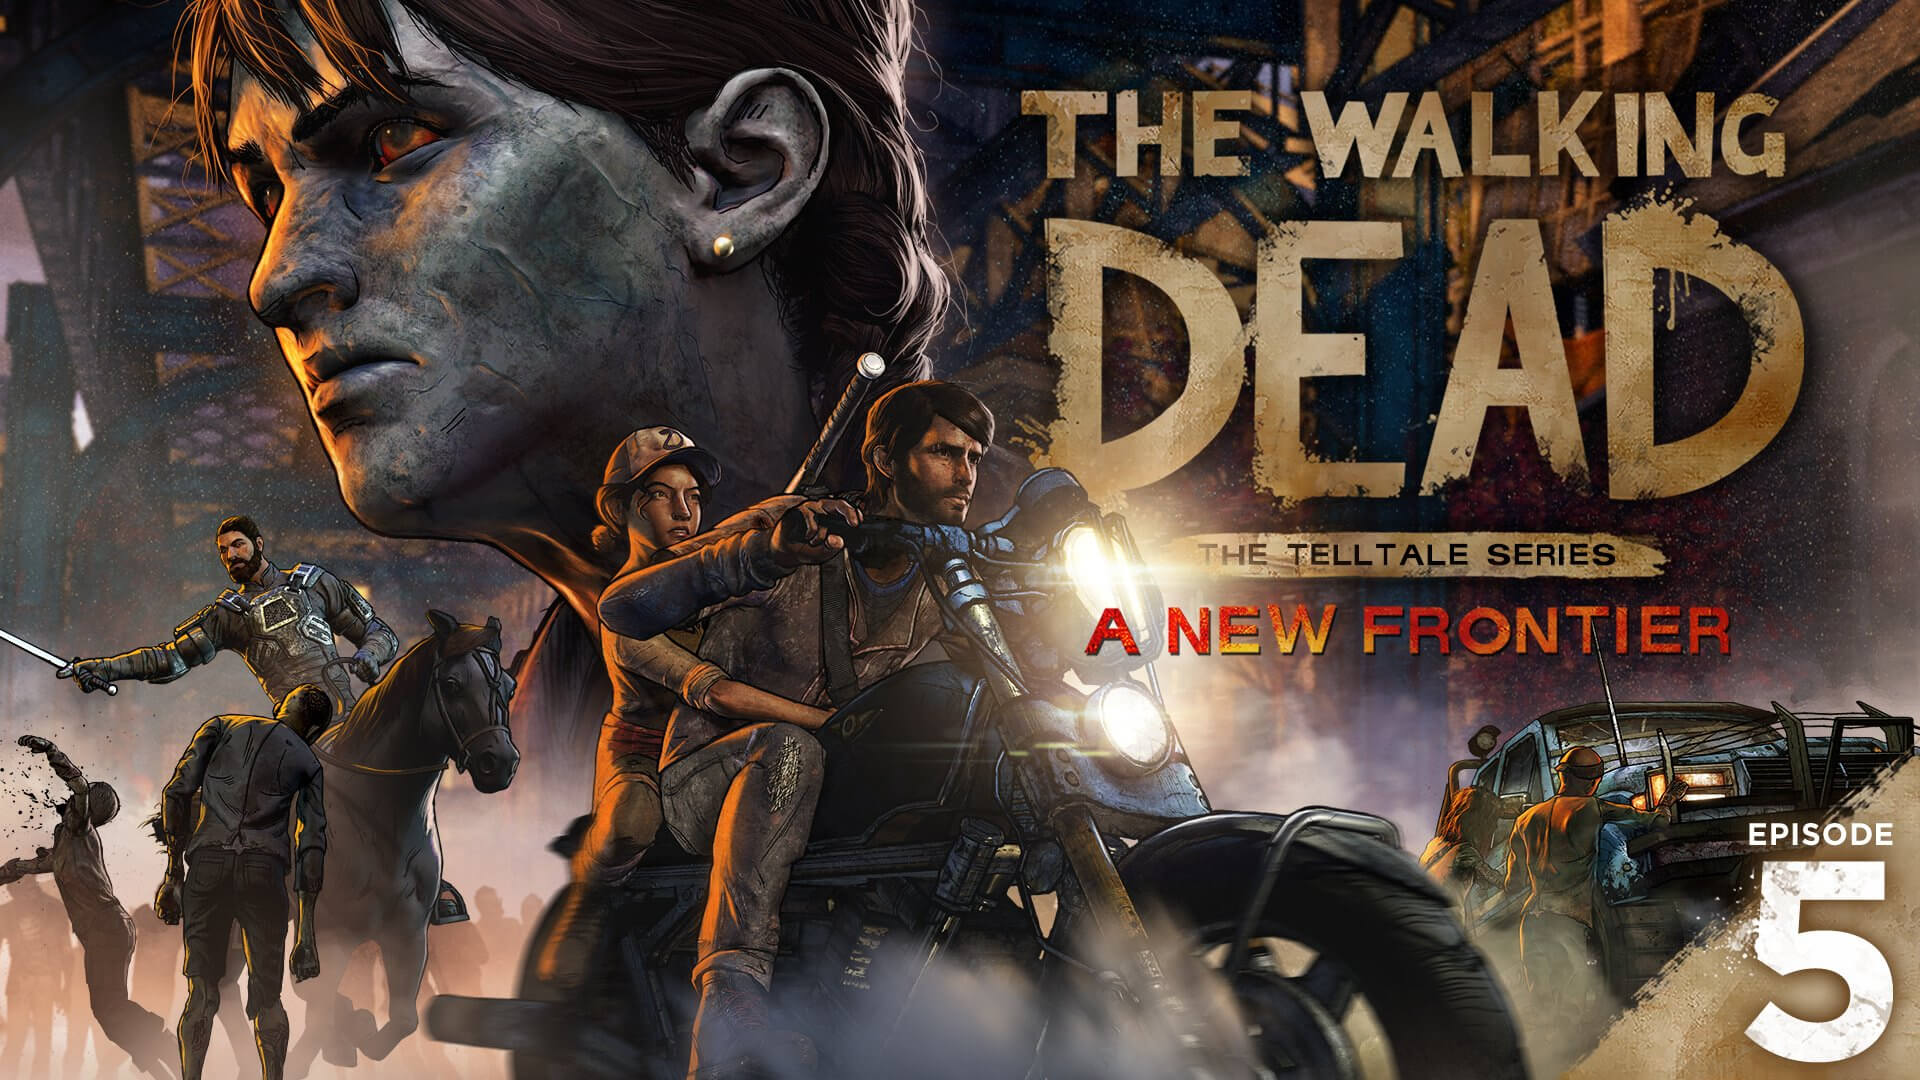 The Walking Dead: A New Frontier - Episode 5 - From the Gallows Masthead